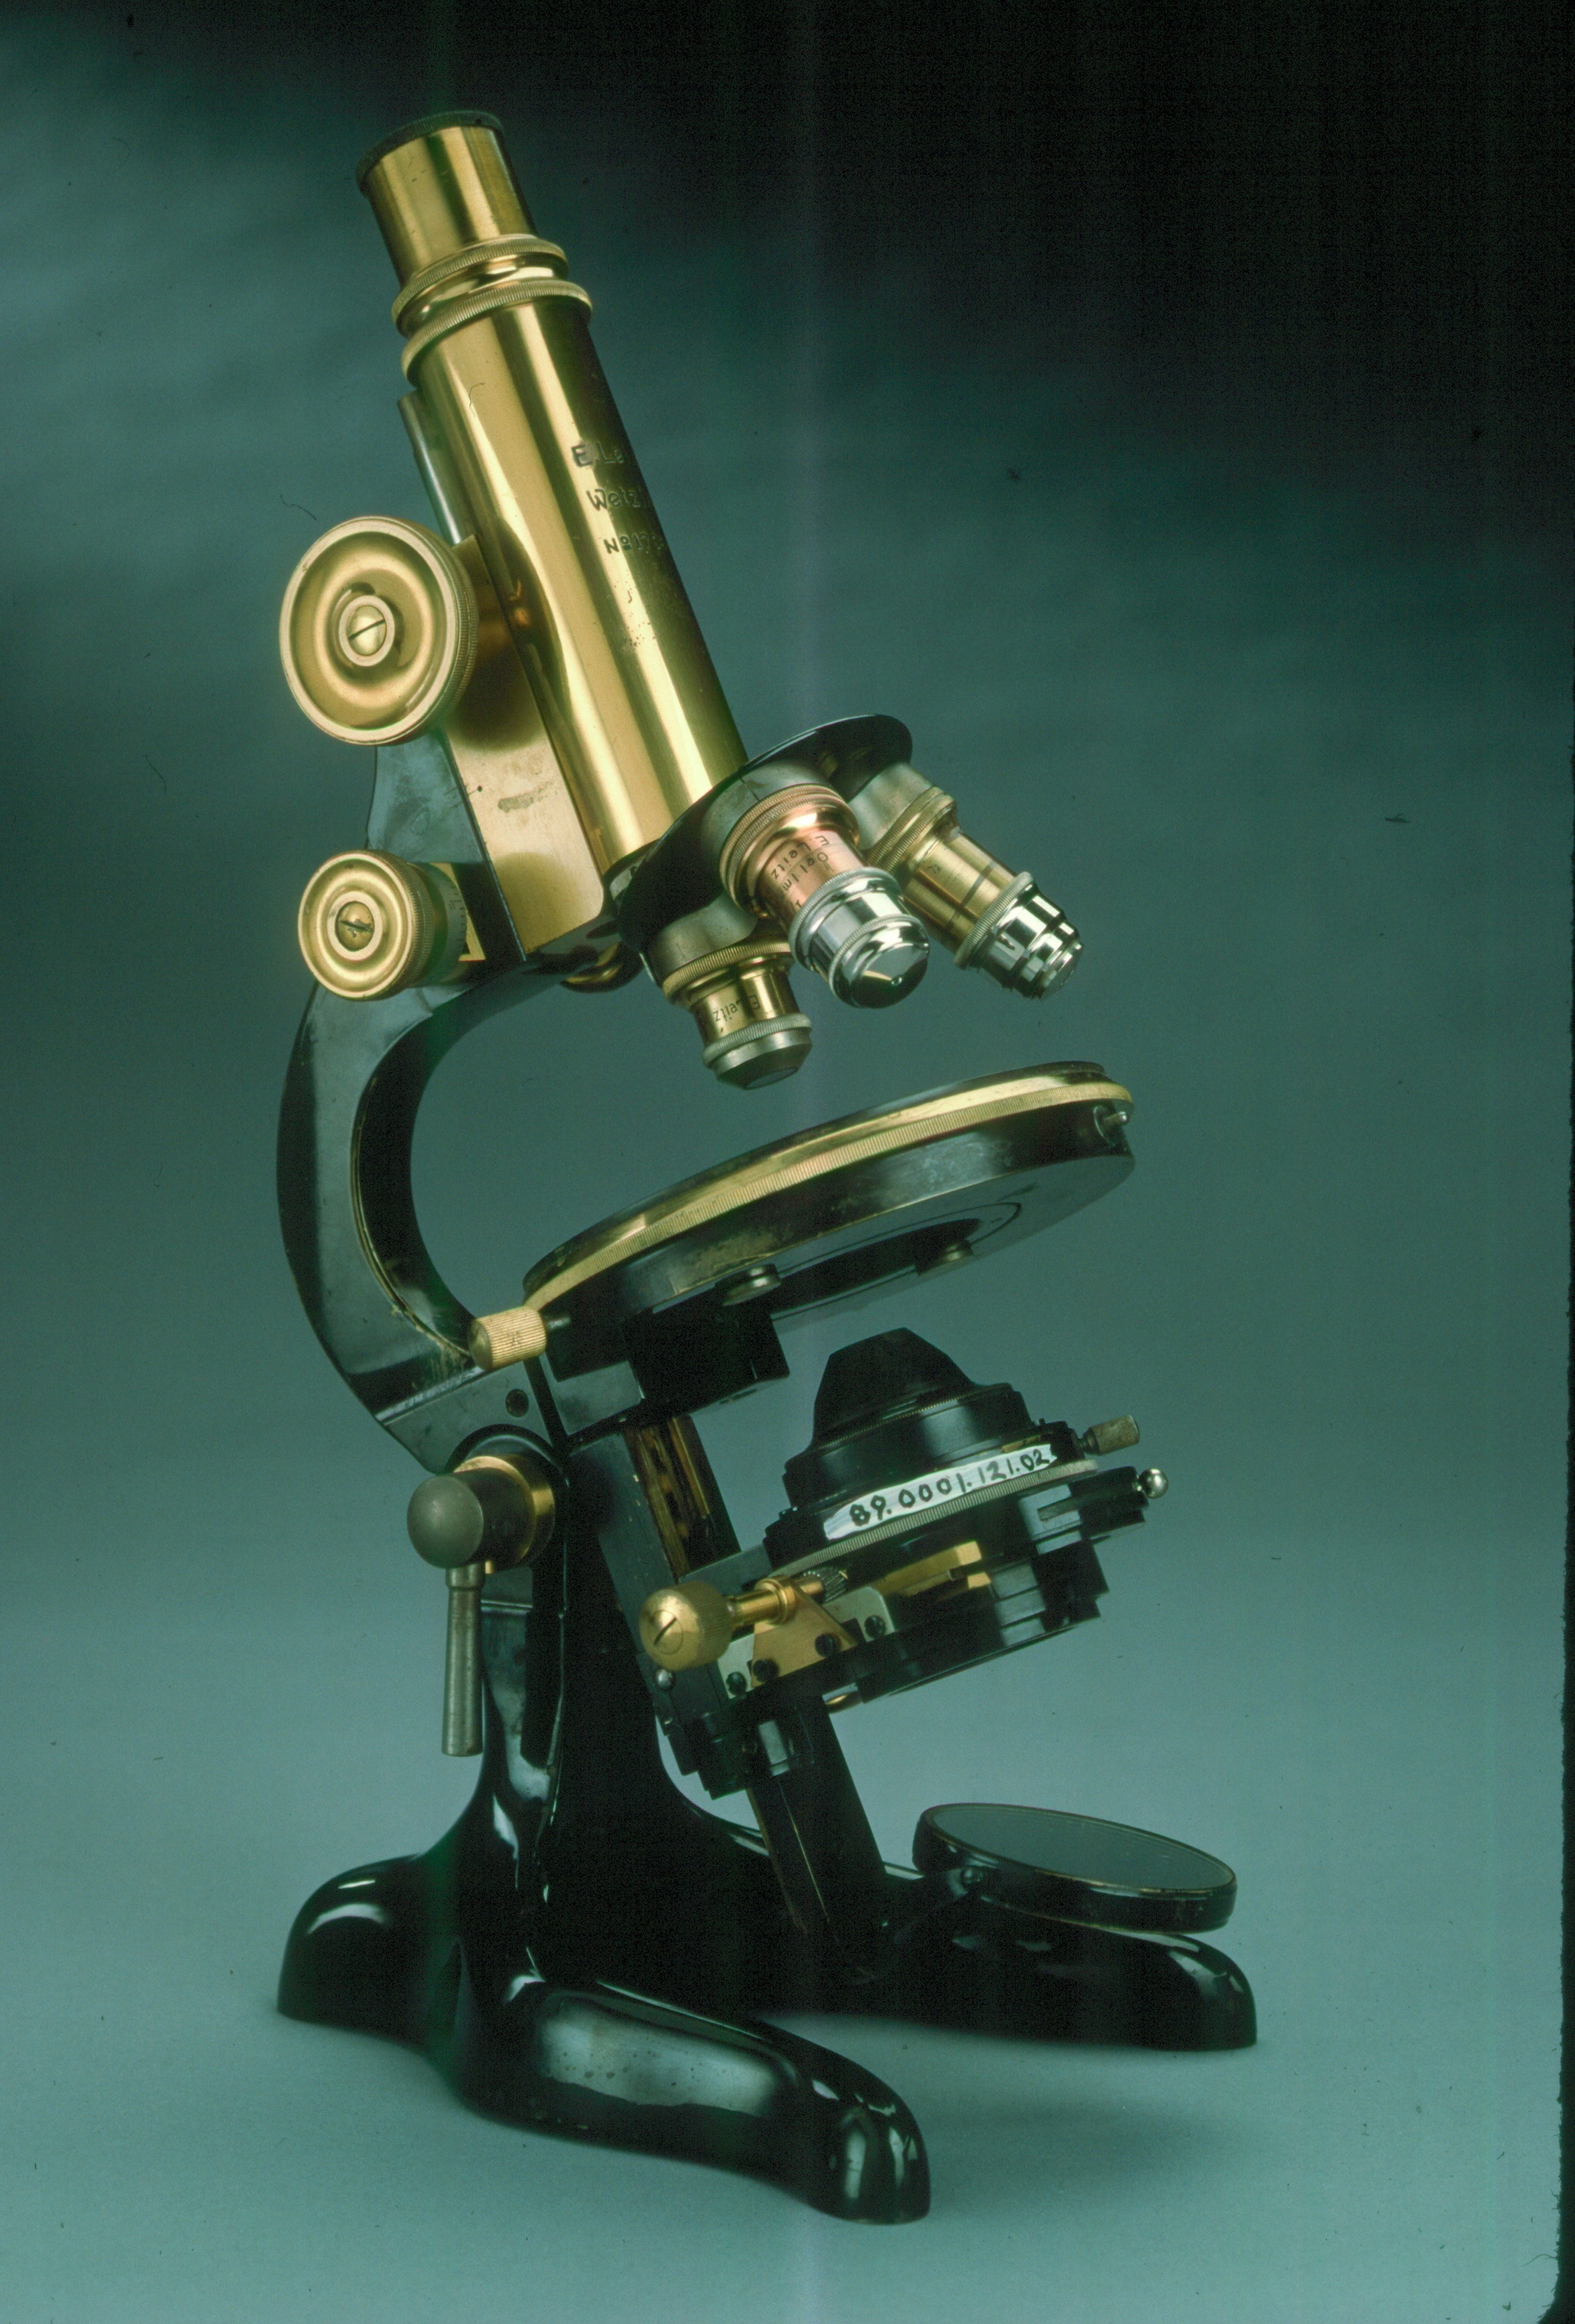 A photo of an antique microscope